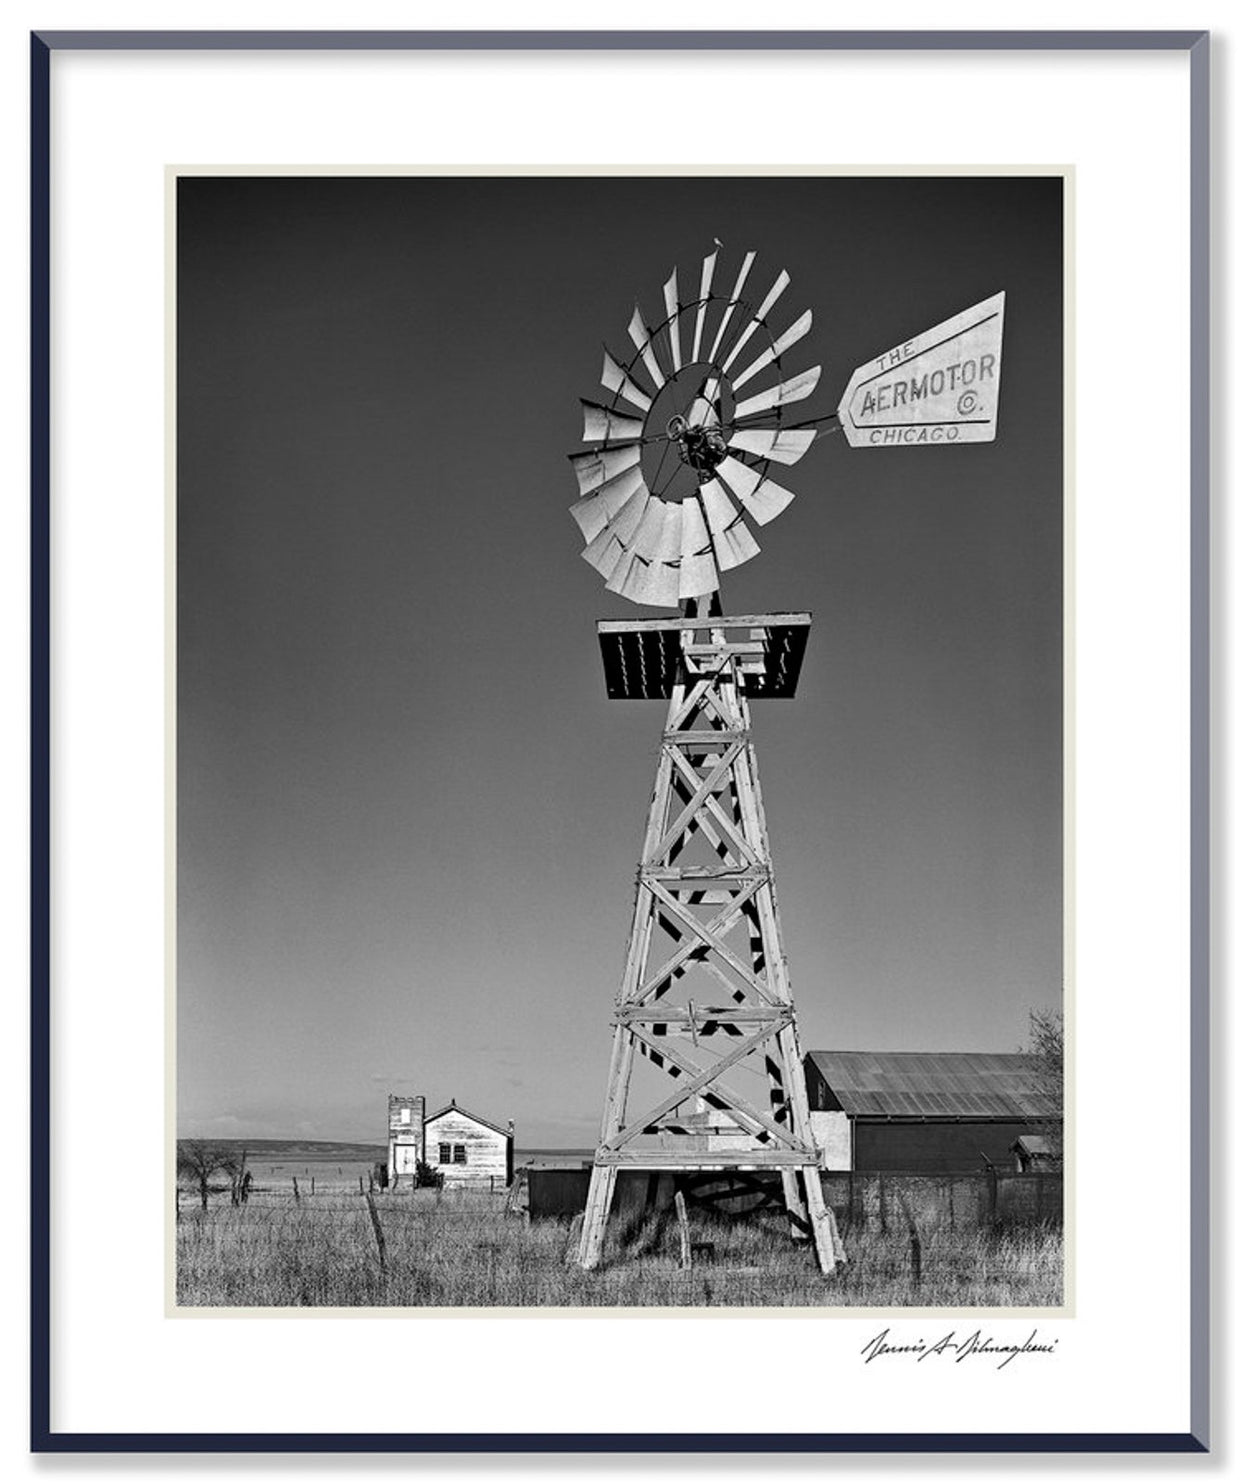 Dilmaghani Black and White Photograph, Aeromotor Windmill, NM